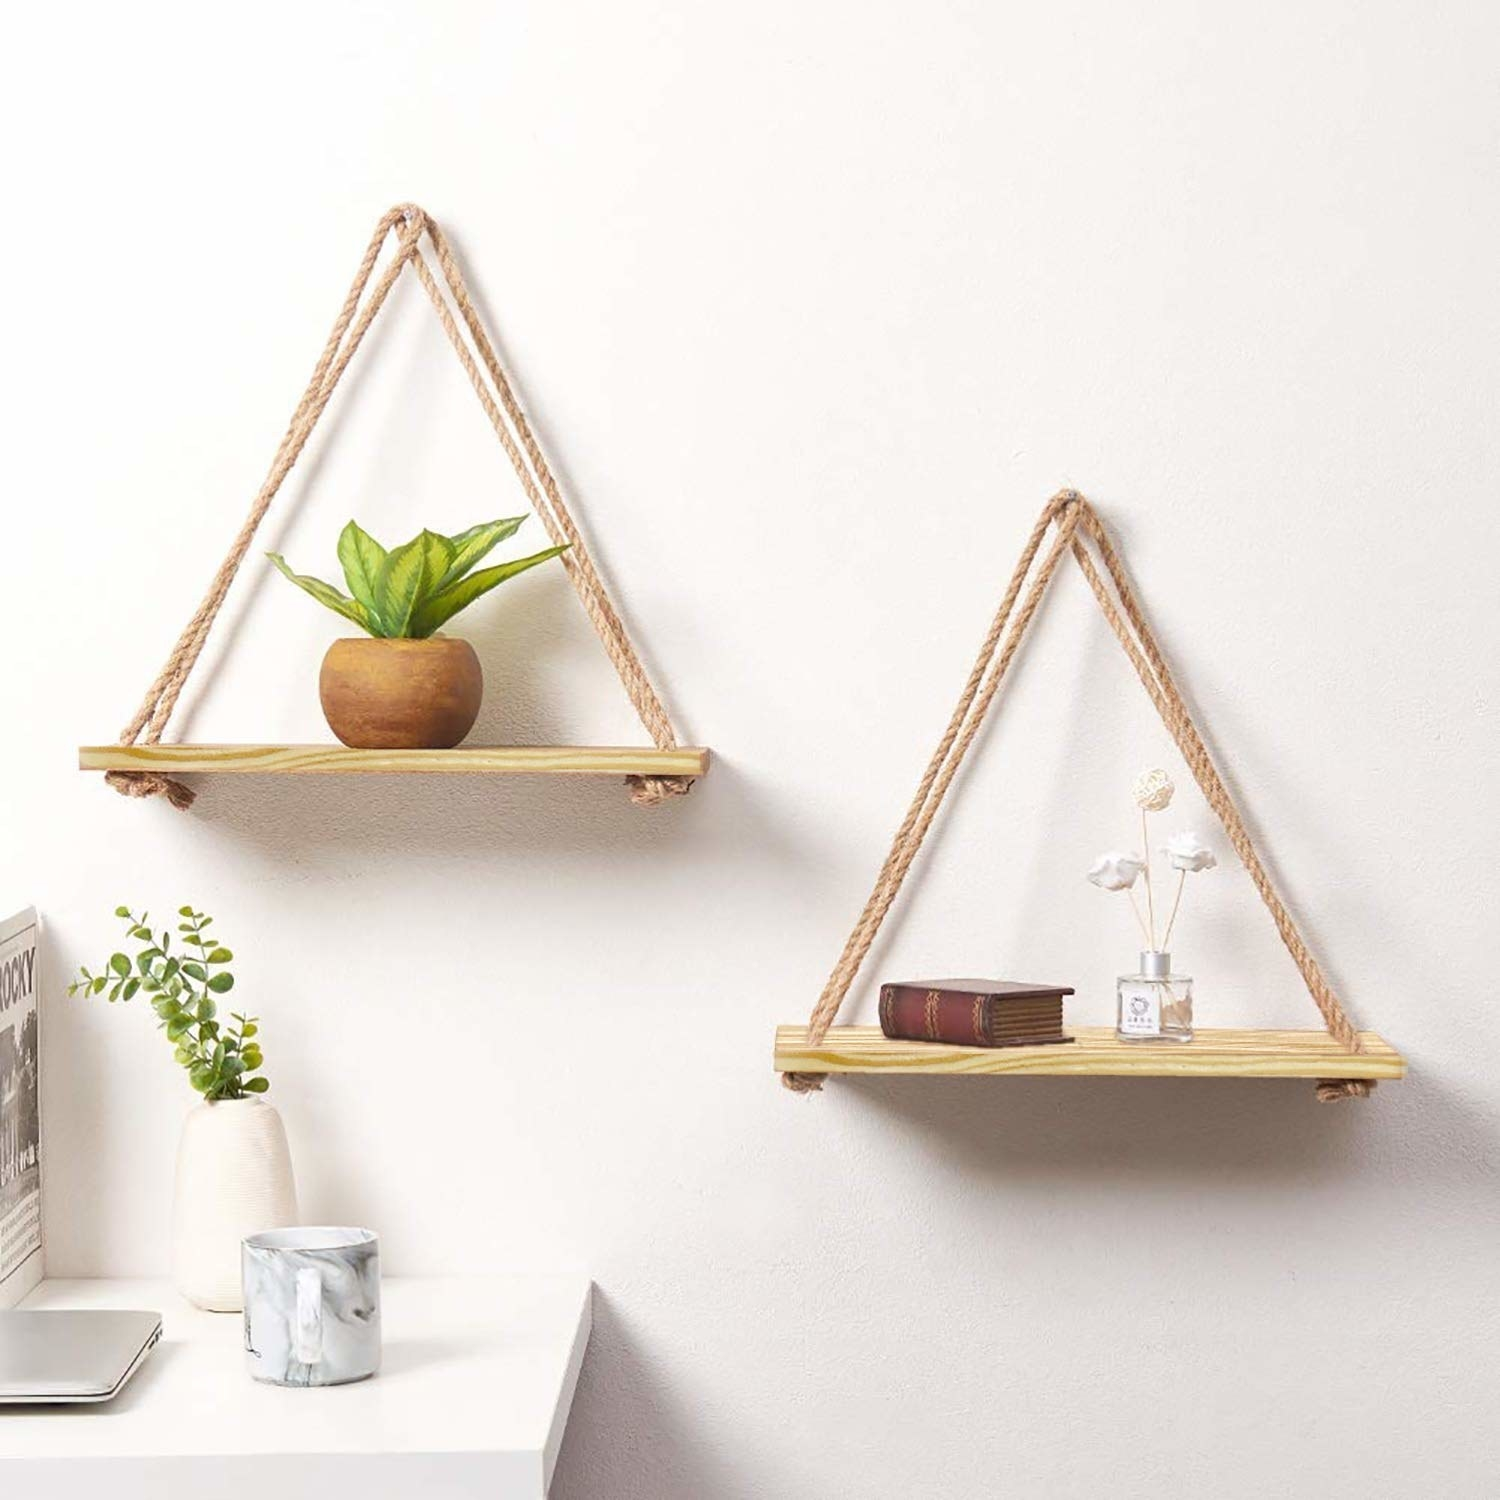 Two separate wooden slabs held together by ropes to form triangular hanging shelves.